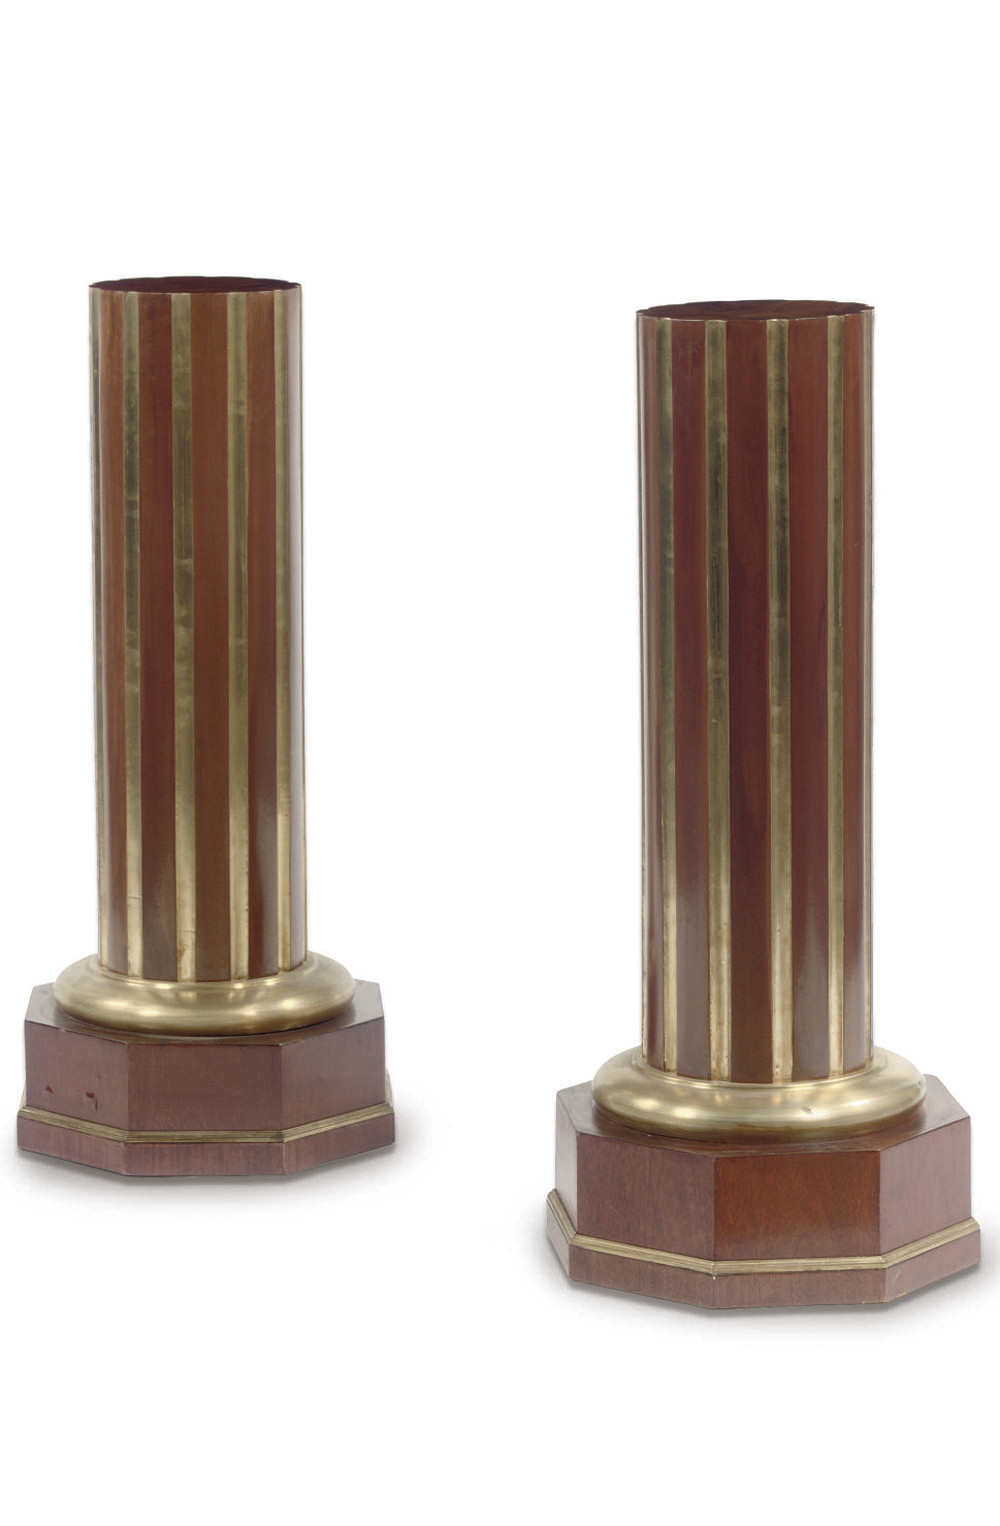 A PAIR OF BRASS-LINED MAHOGANY